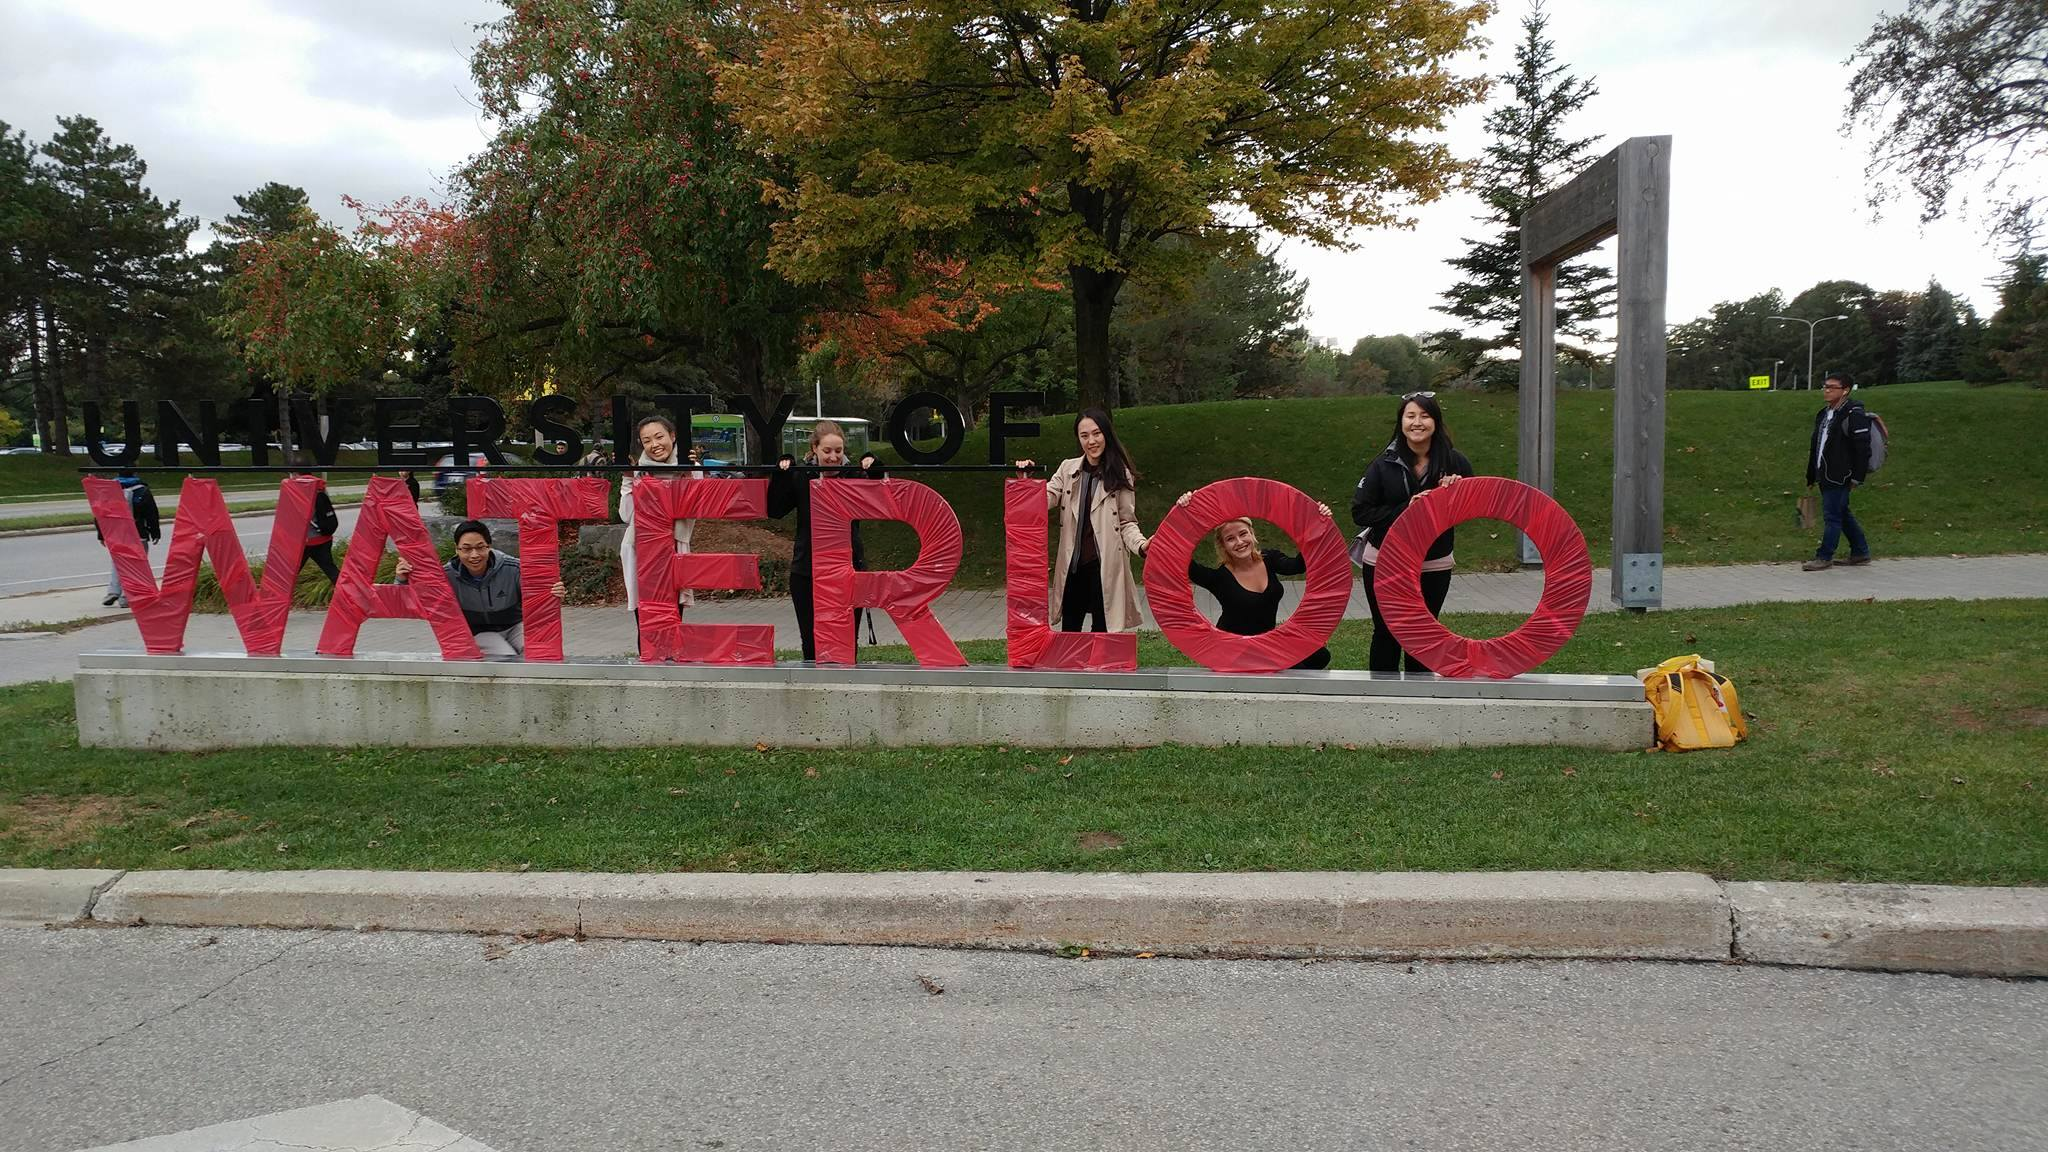 University of Waterloo entrance sign wrapped in red tape for Go Red day